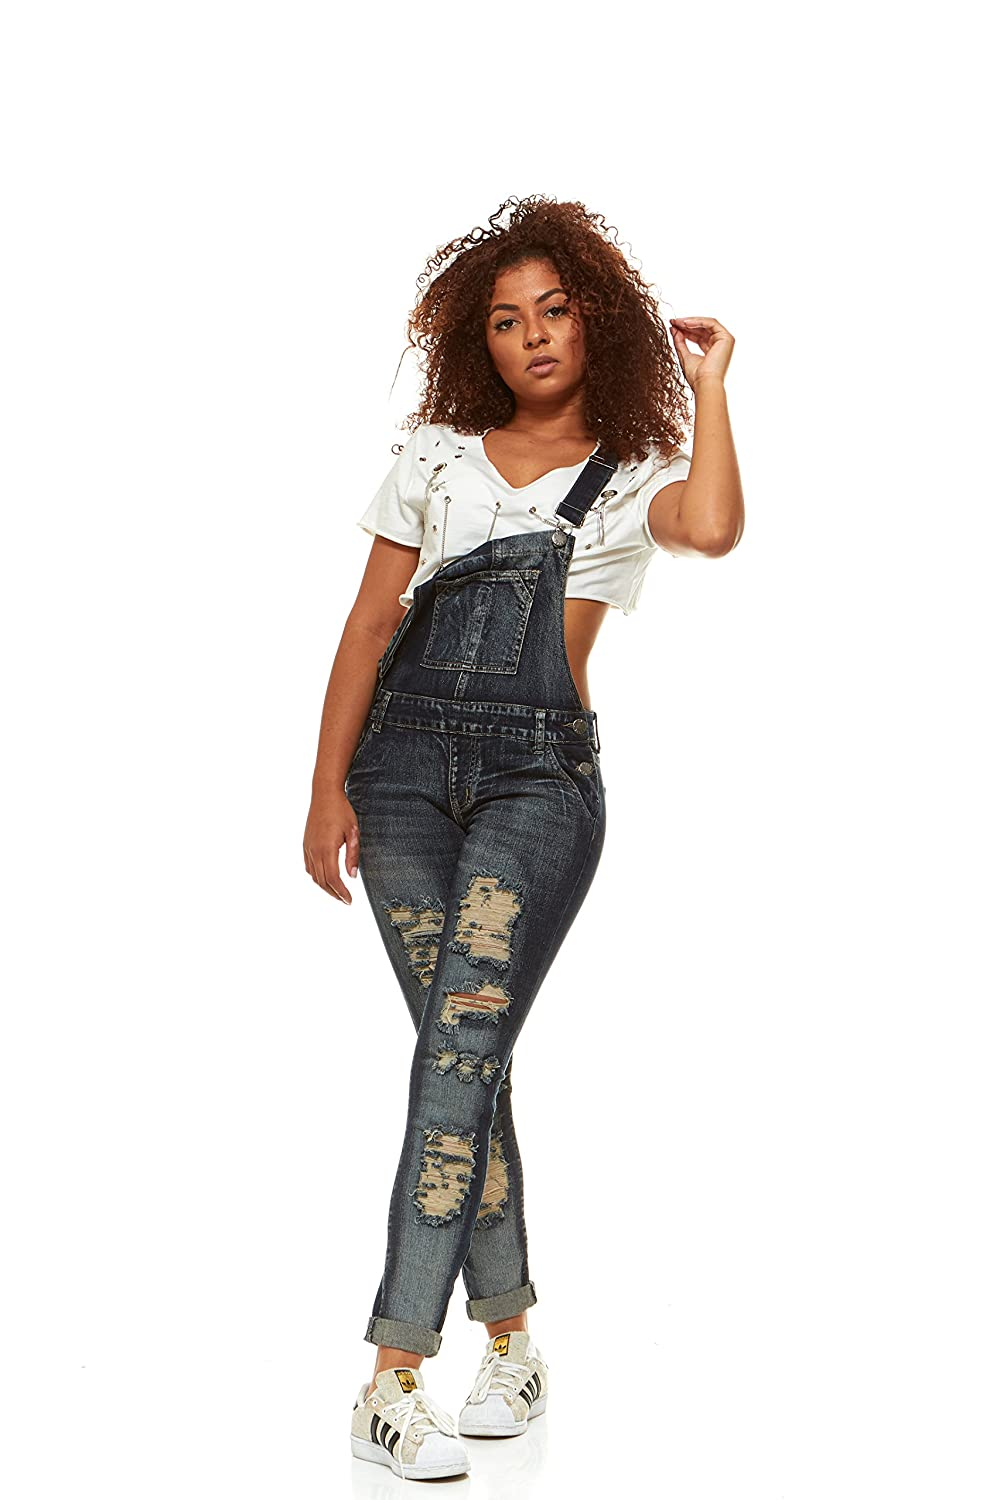 44b752ad30 Amazon.com  V.I.P.JEANS Casual Blue Jean Bib Strap Pocket Overalls for Women  Slim Fit Junior or Plus Sizes Assorted Styles  Clothing